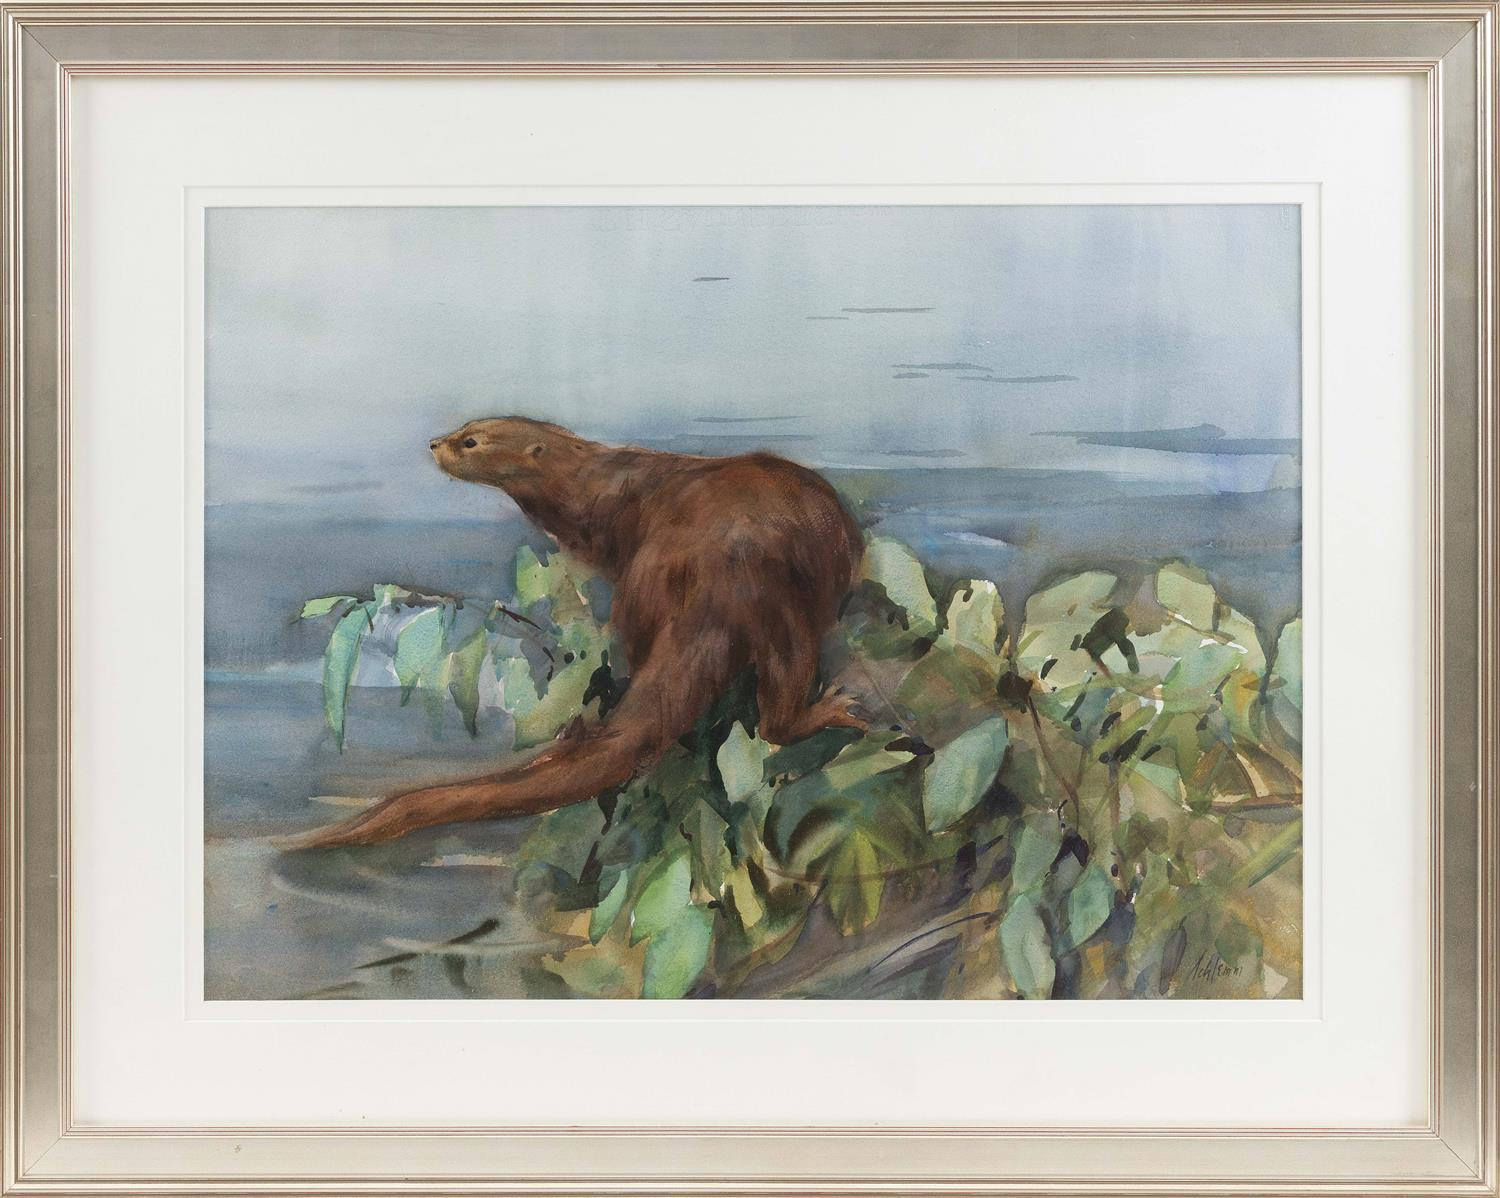 "BETTY SCHLEMM, Massachusetts/New Jersey, b. 1934, Otter., Watercolor on paper, 21"" x 29"" sight. Framed 31.5"" x 40""."